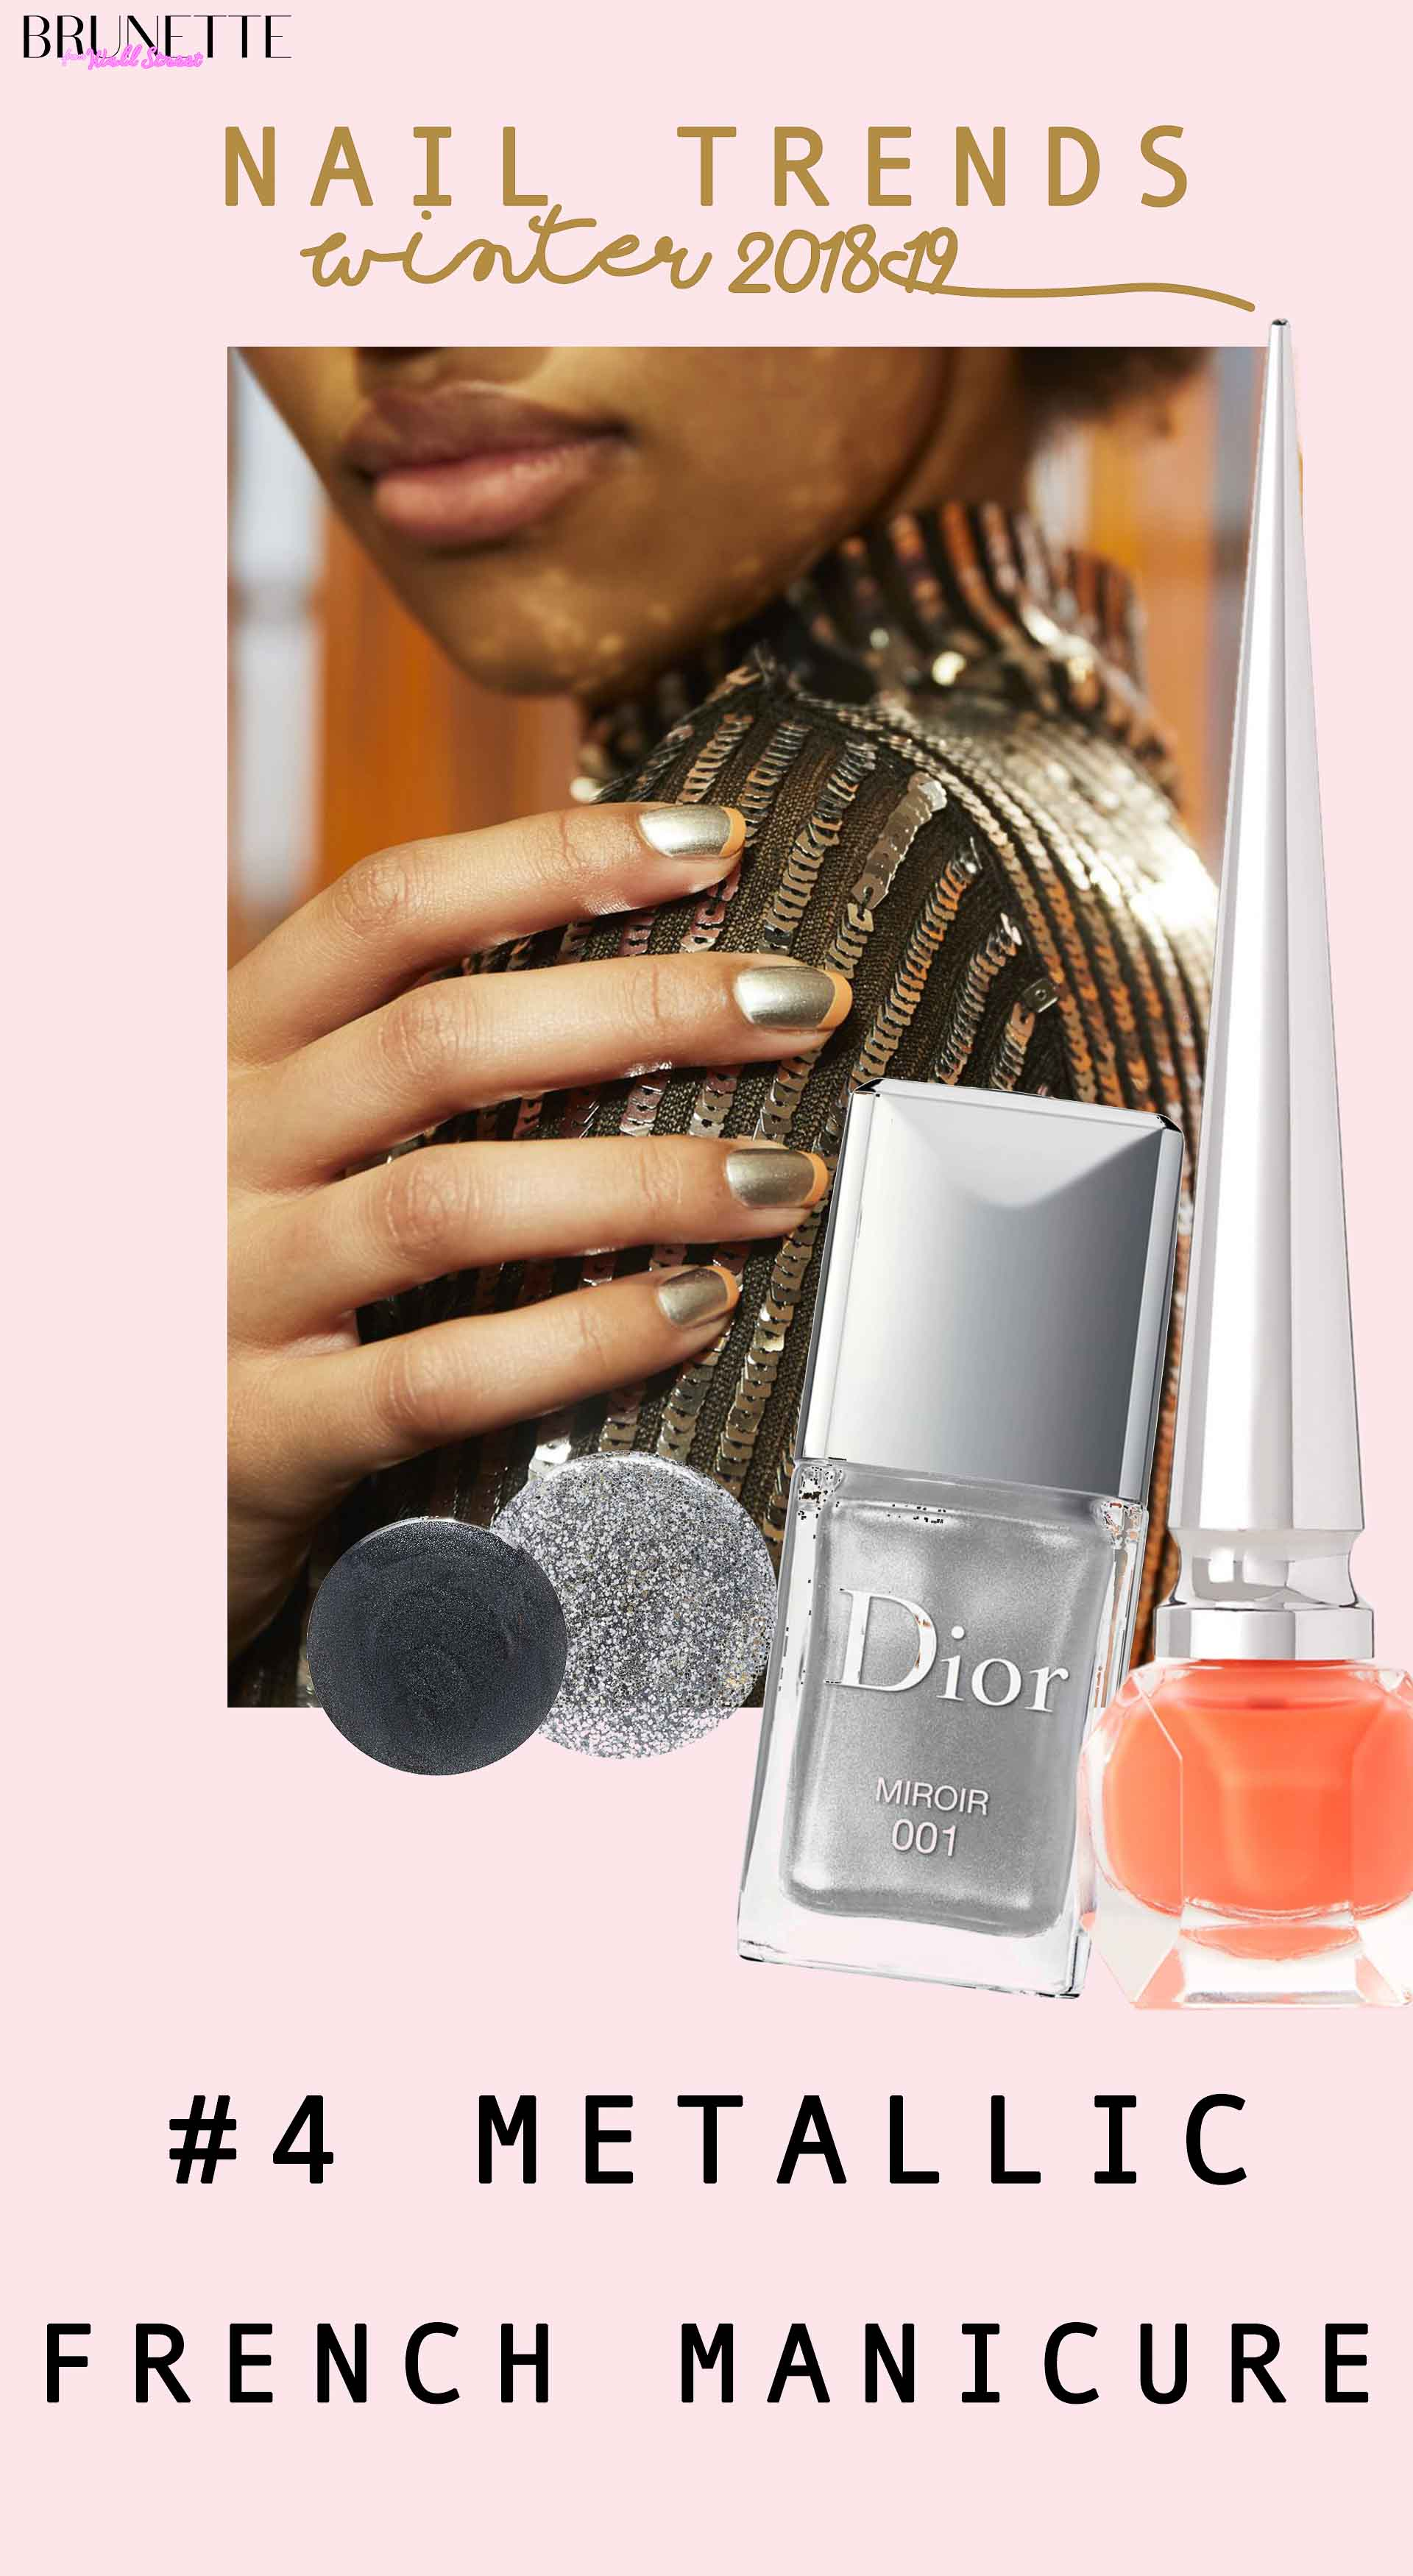 silver Dior nail polish with text overlay nail trends winter 2018 #4 metallic french manicure